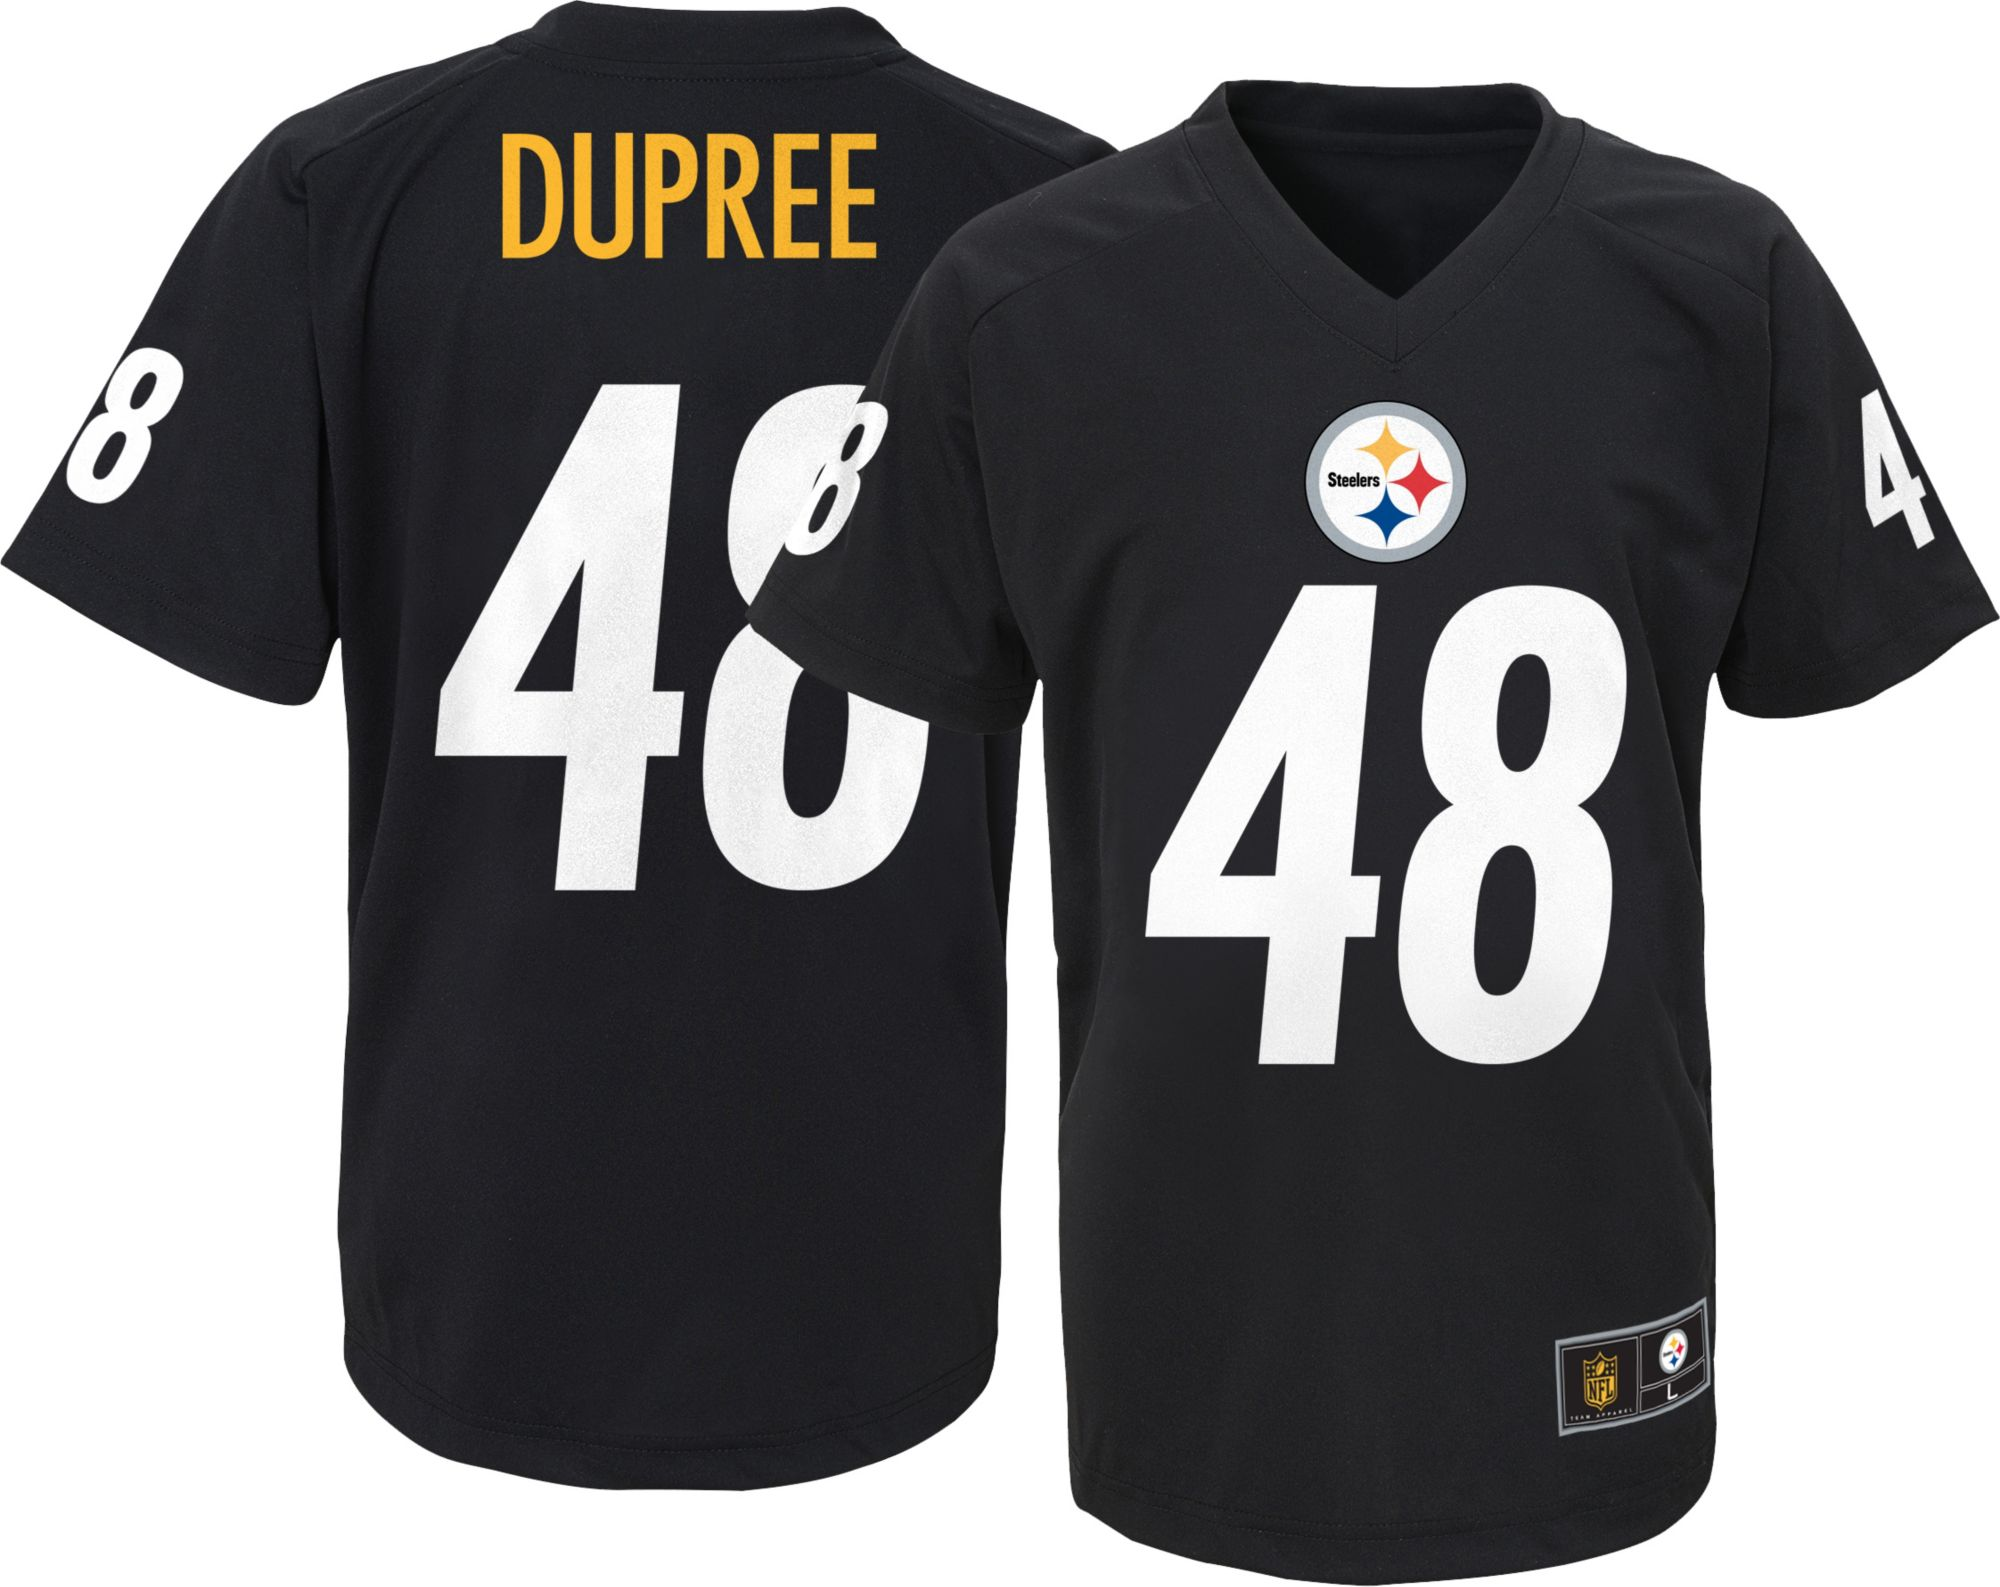 bud dupree youth jersey